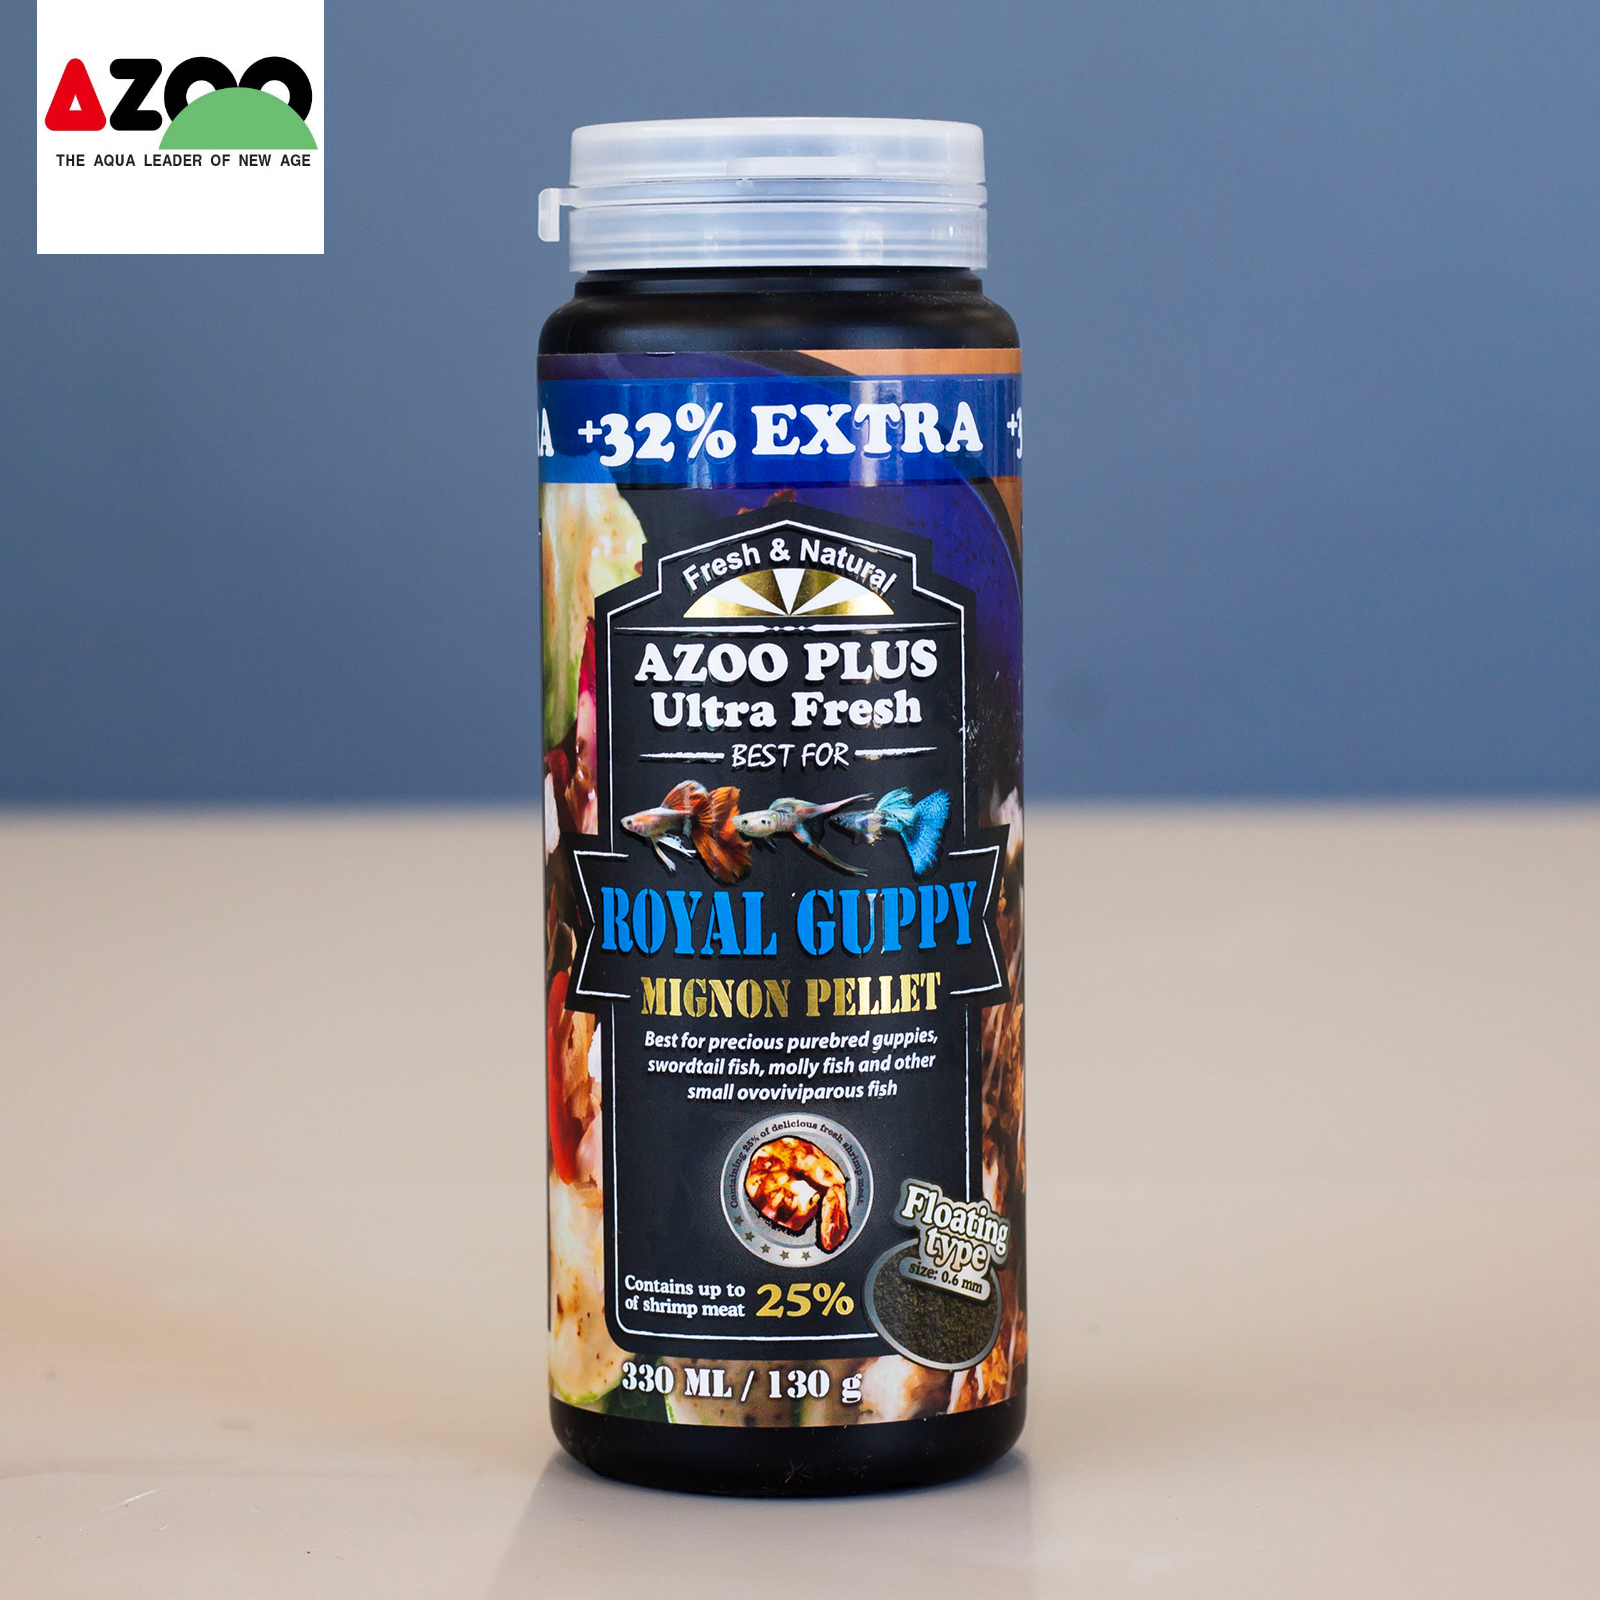 AZOO Royal Guppy Mignon Pellet 330ml/130g